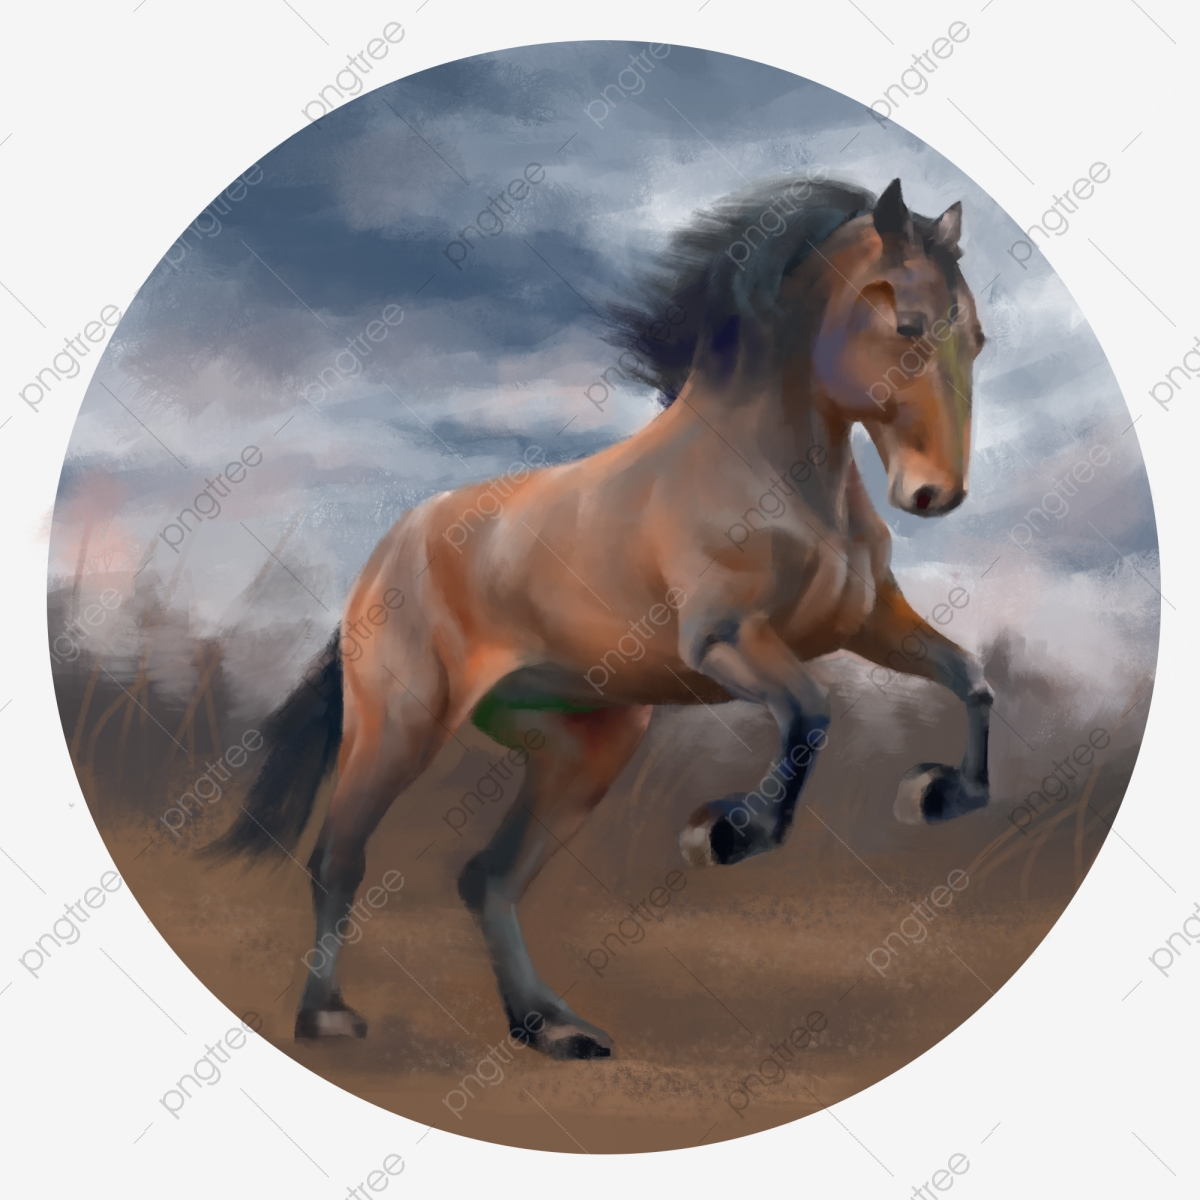 There Are Layered Hand Painted Realism Thick Painted Oil Painting Wind Animal Horse Horse Clipart Realistic Thick Coating Png Transparent Clipart Image And Psd File For Free Download